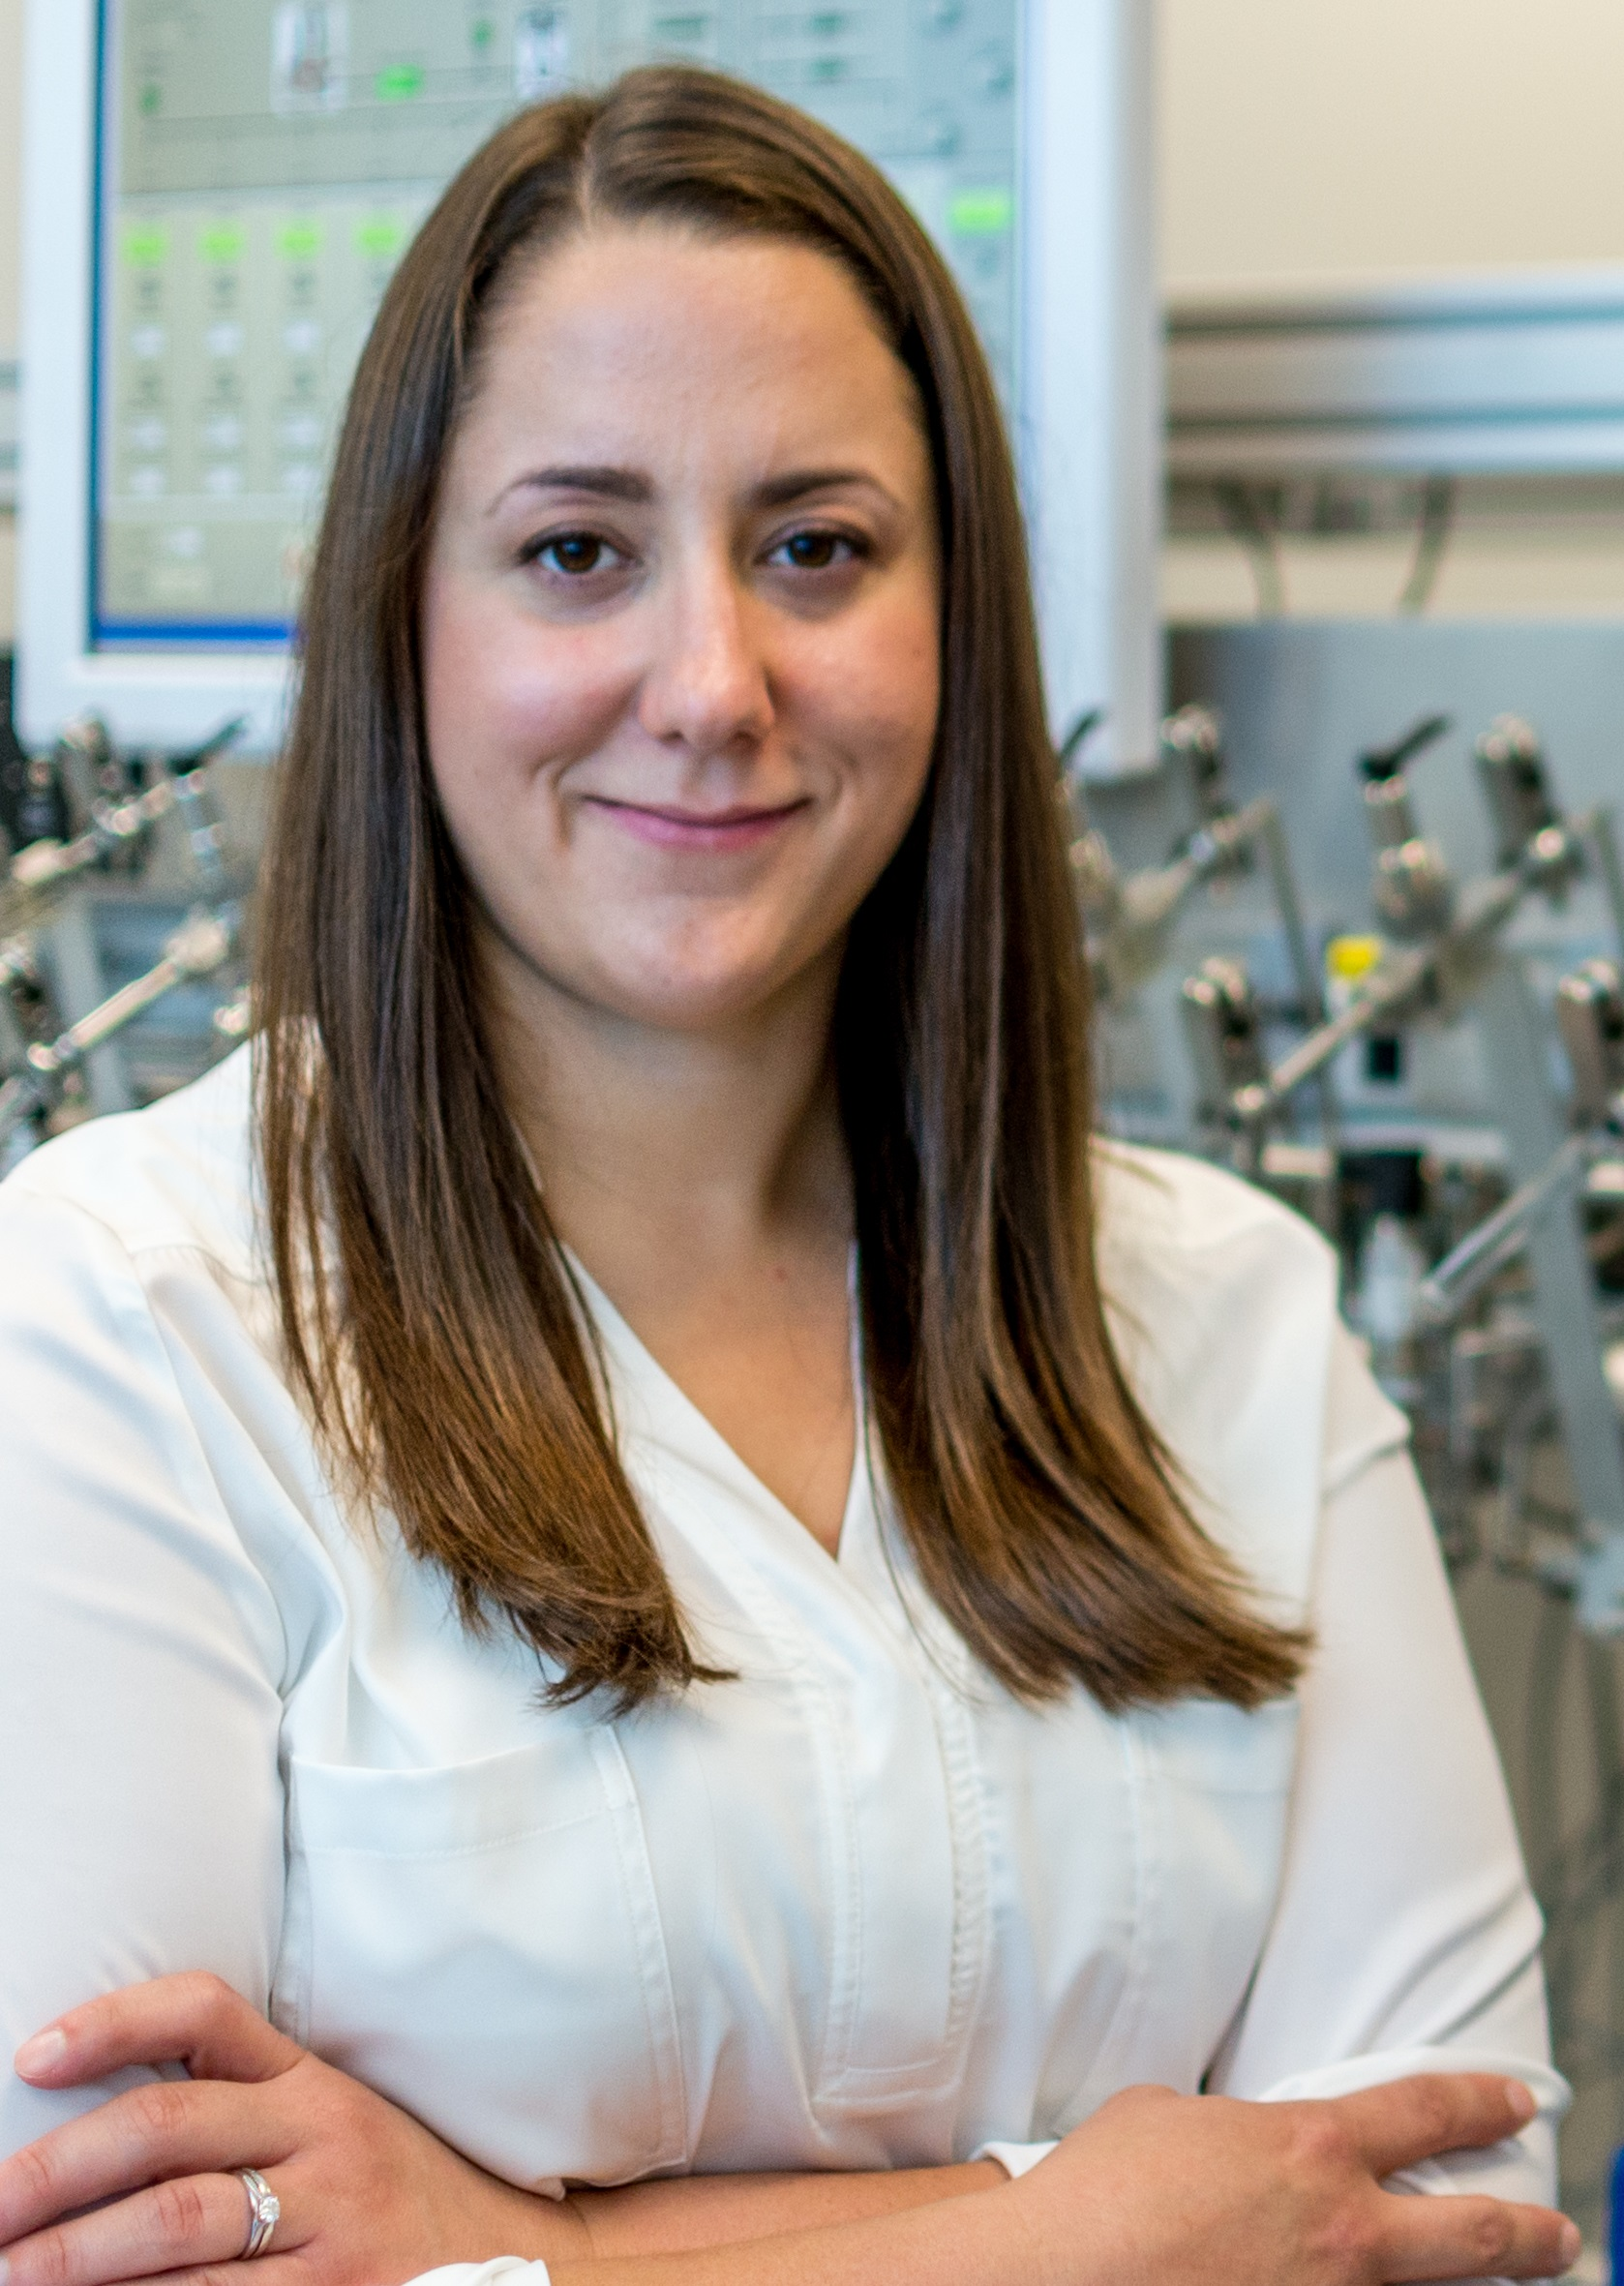 Sarah Murseli wearing a labcoat in a laboratory